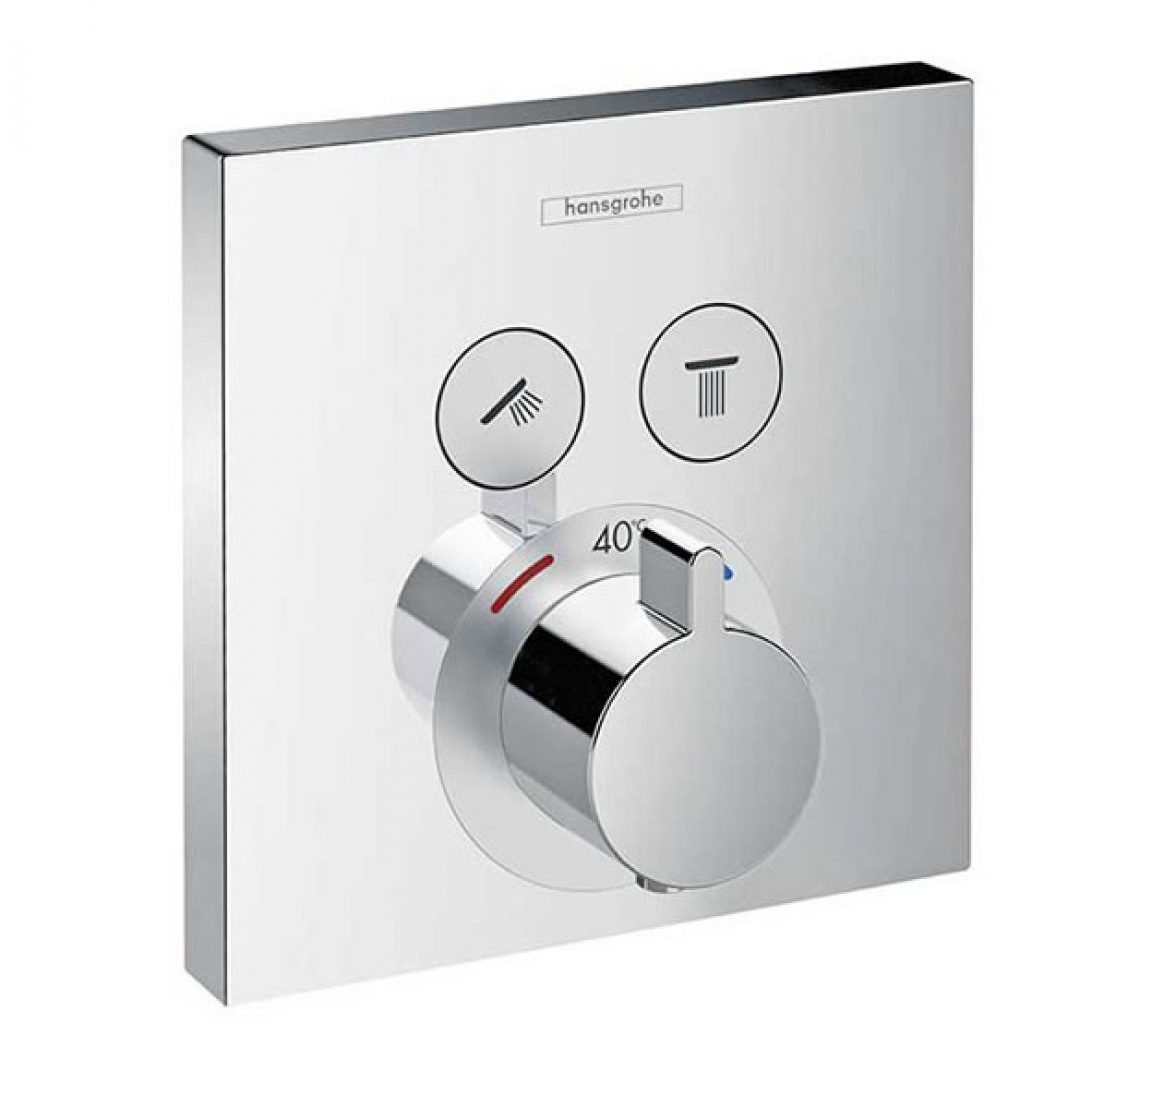 Thermostatic valves